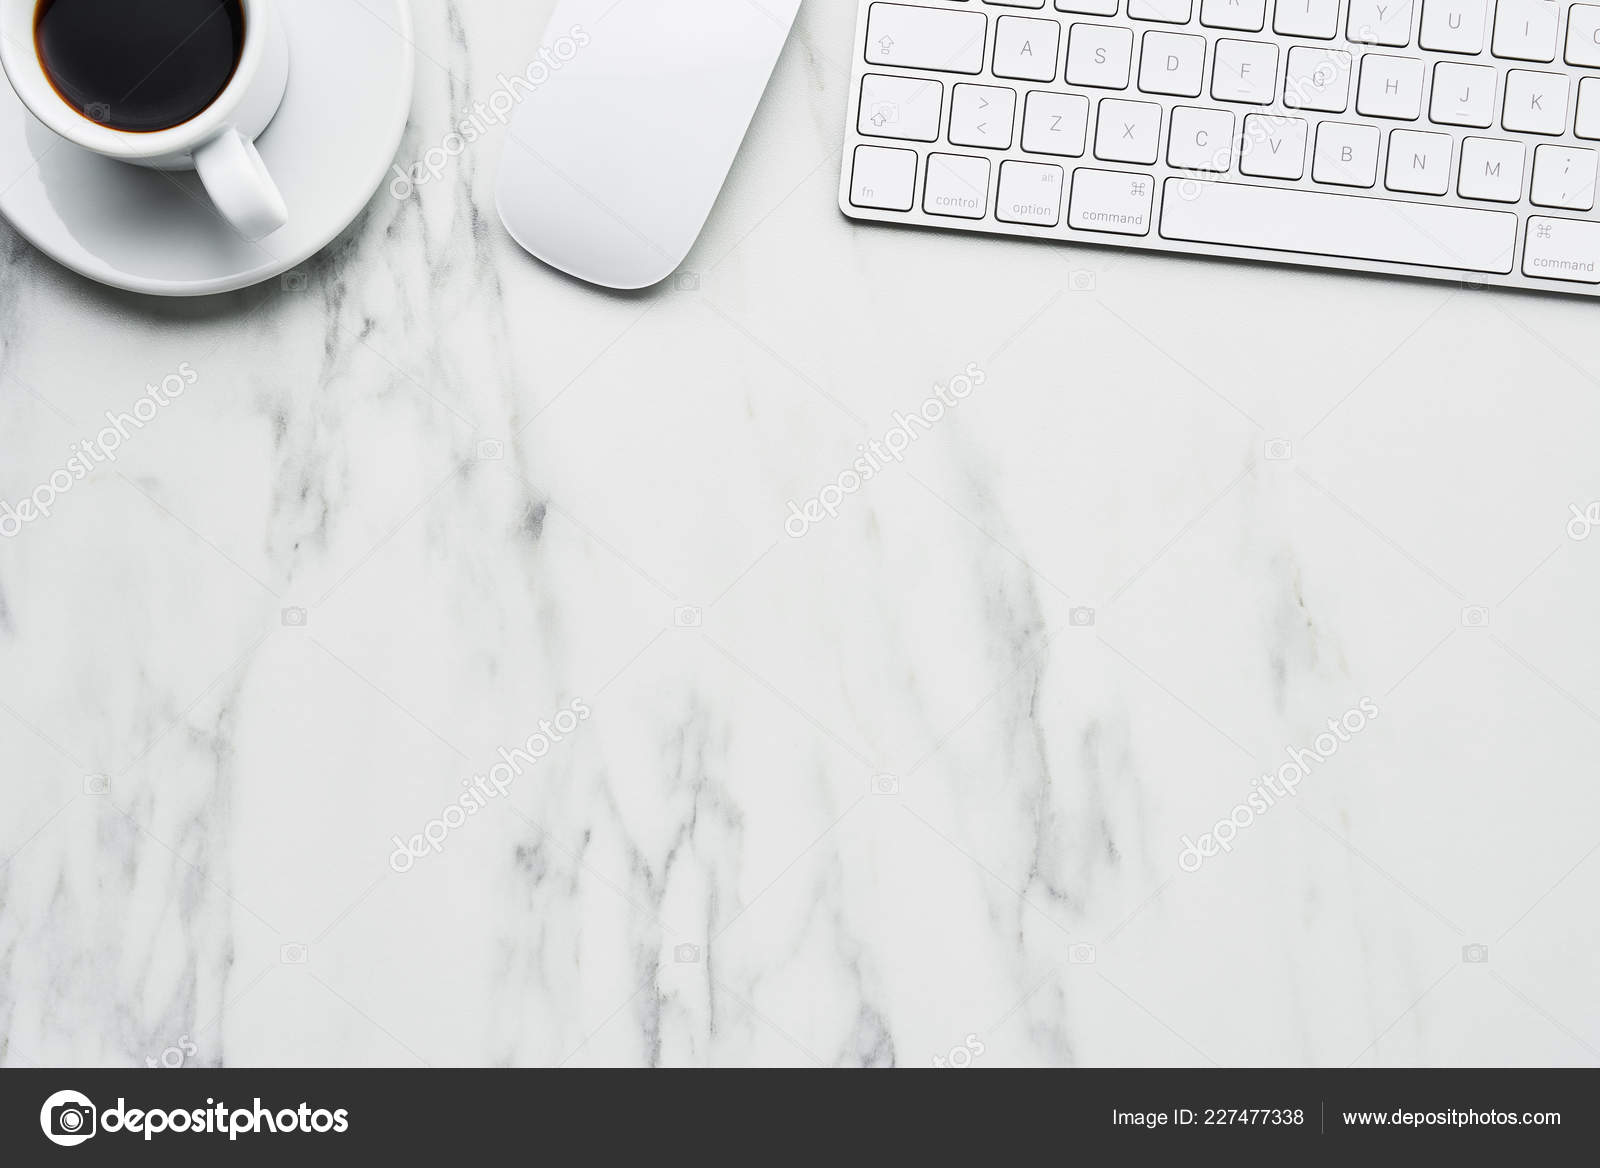 Business Composition White Computer Keyboard Mouse Coffee Cup White Marble Stock Photo C Xmarshallfilms 227477338